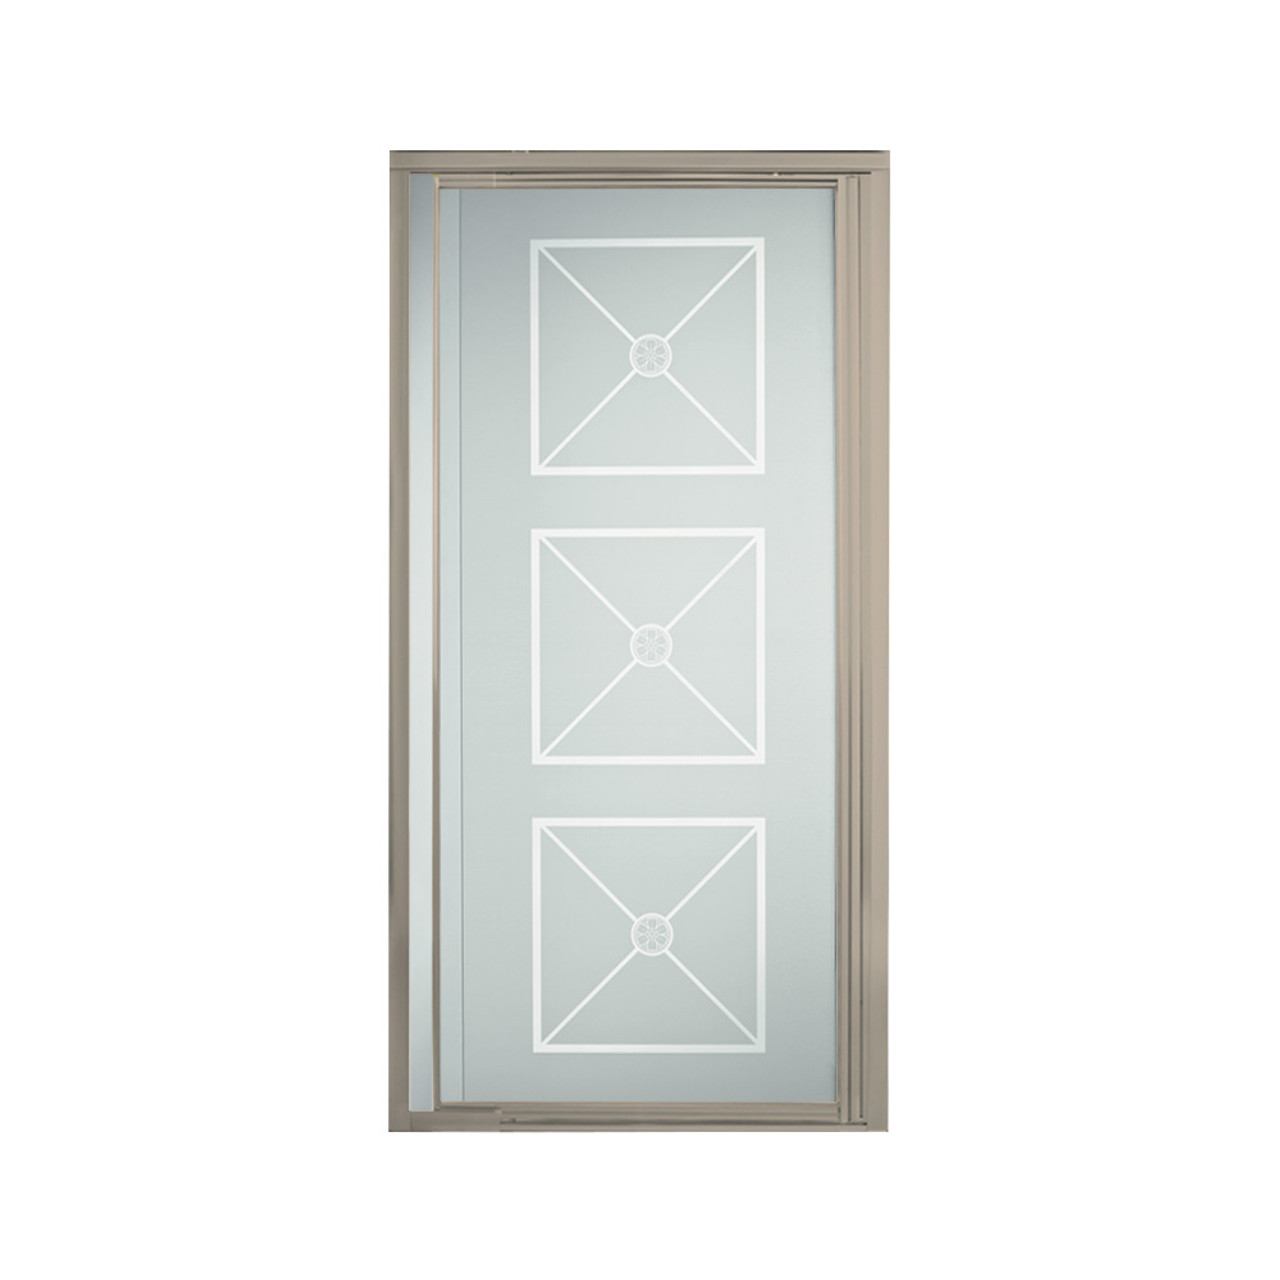 Sterling 1505d 36n G64 Vista Pivot Ii 31 1 4 In X 36 In Framed Alcove Shower Door With Brownstone Glass